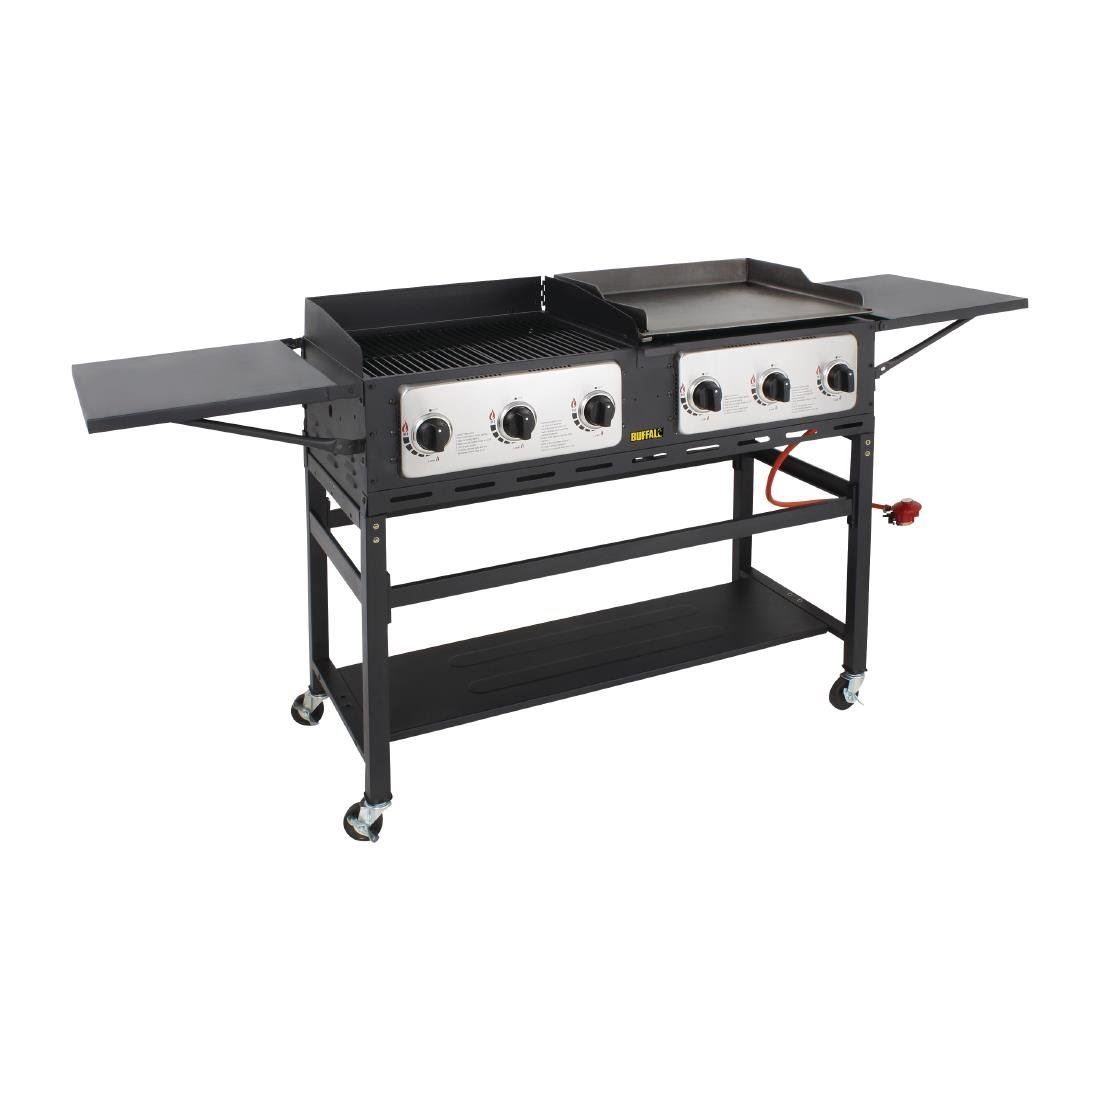 Buffalo BBQ Grill and Griddle Made of Stainless Steel /& Steel 17.5kW